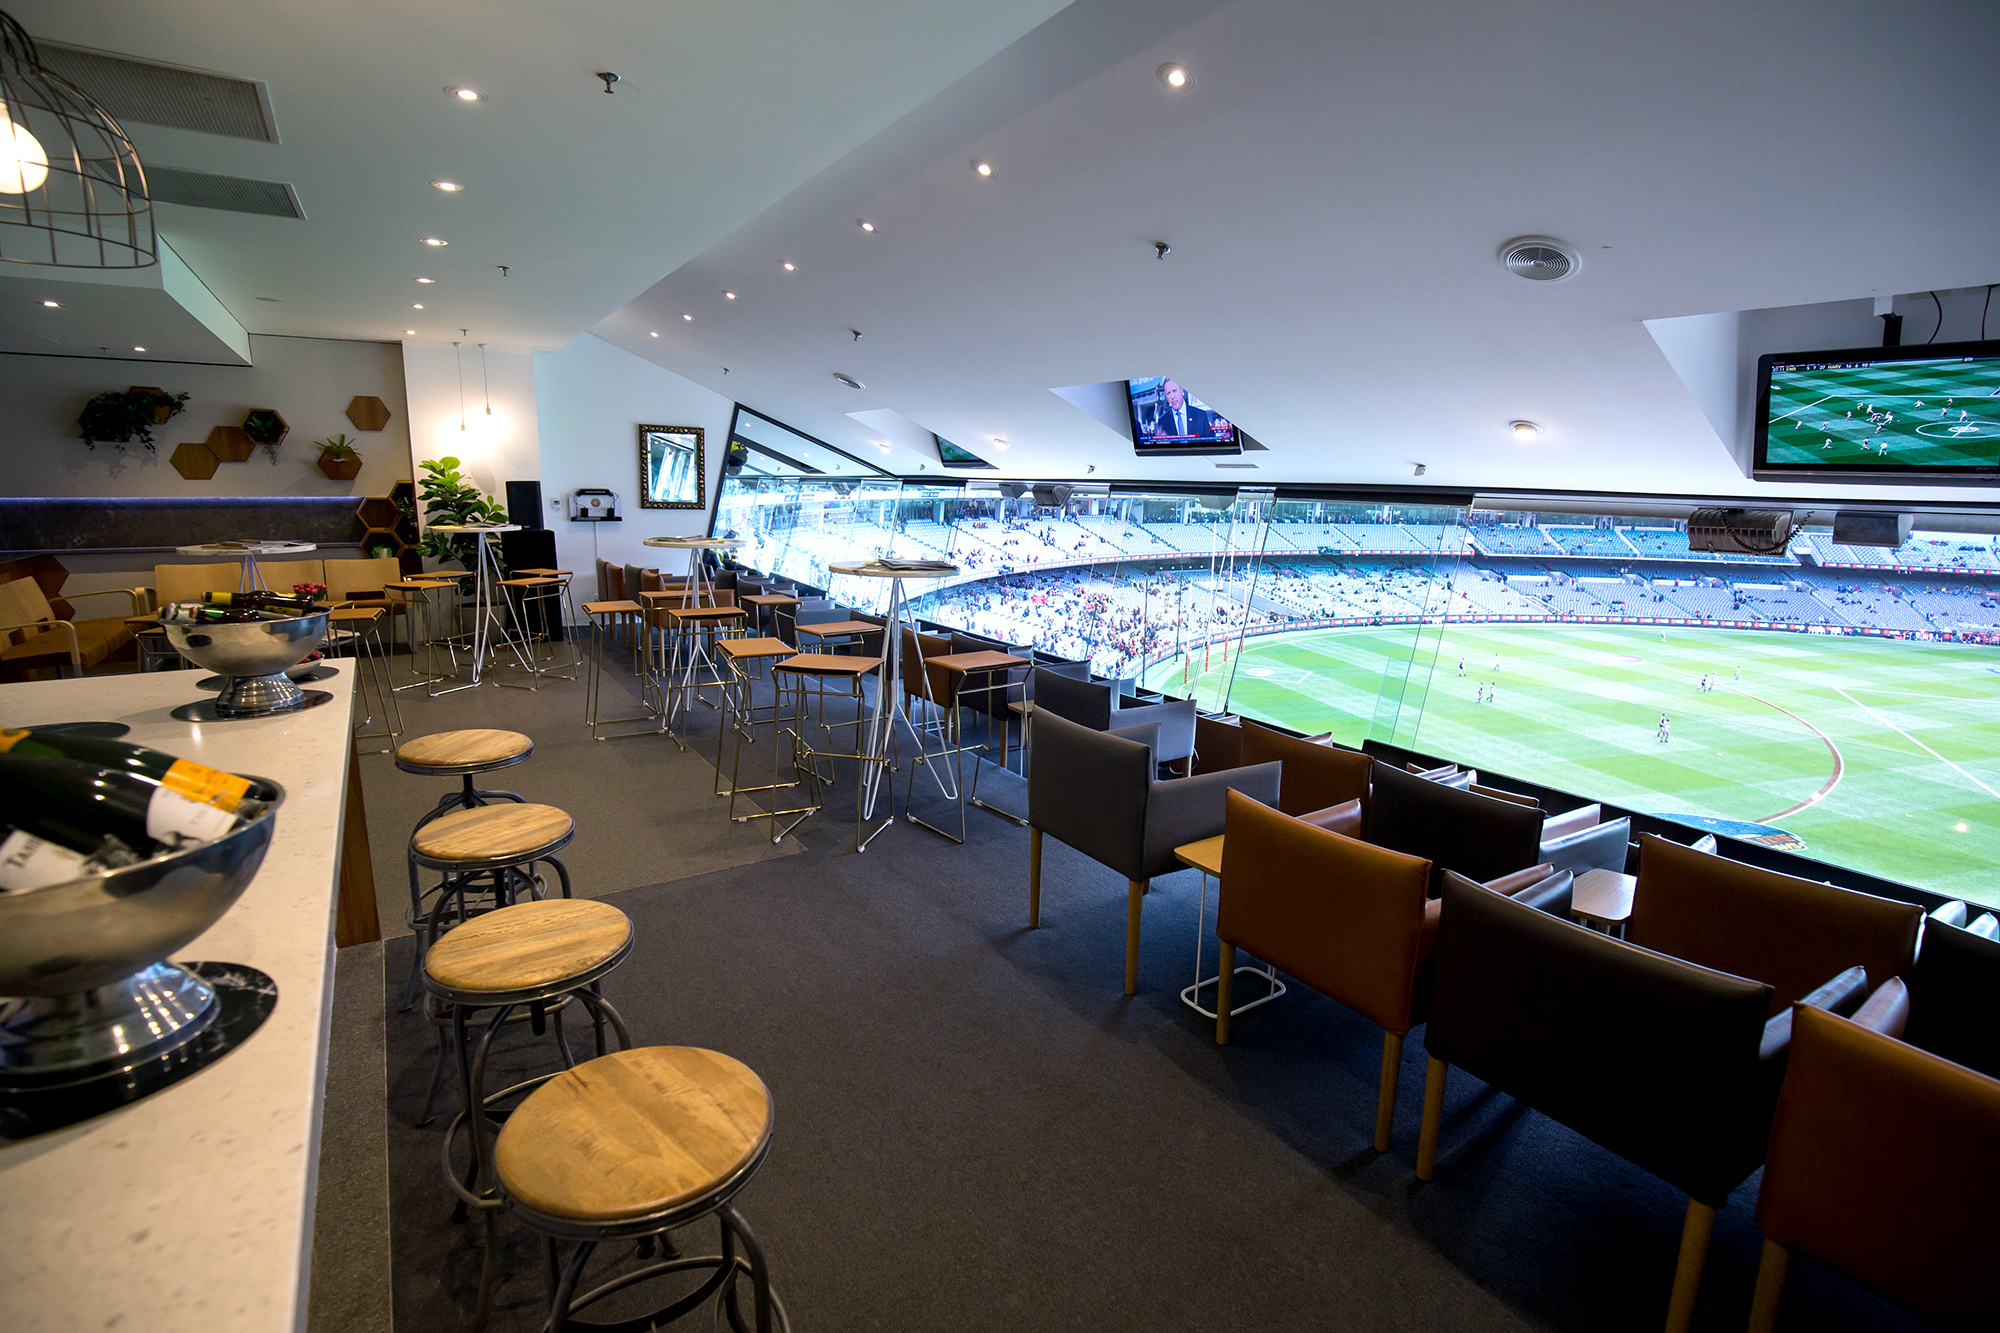 Melbourne Corporate Event Hospitality Venue Mcg